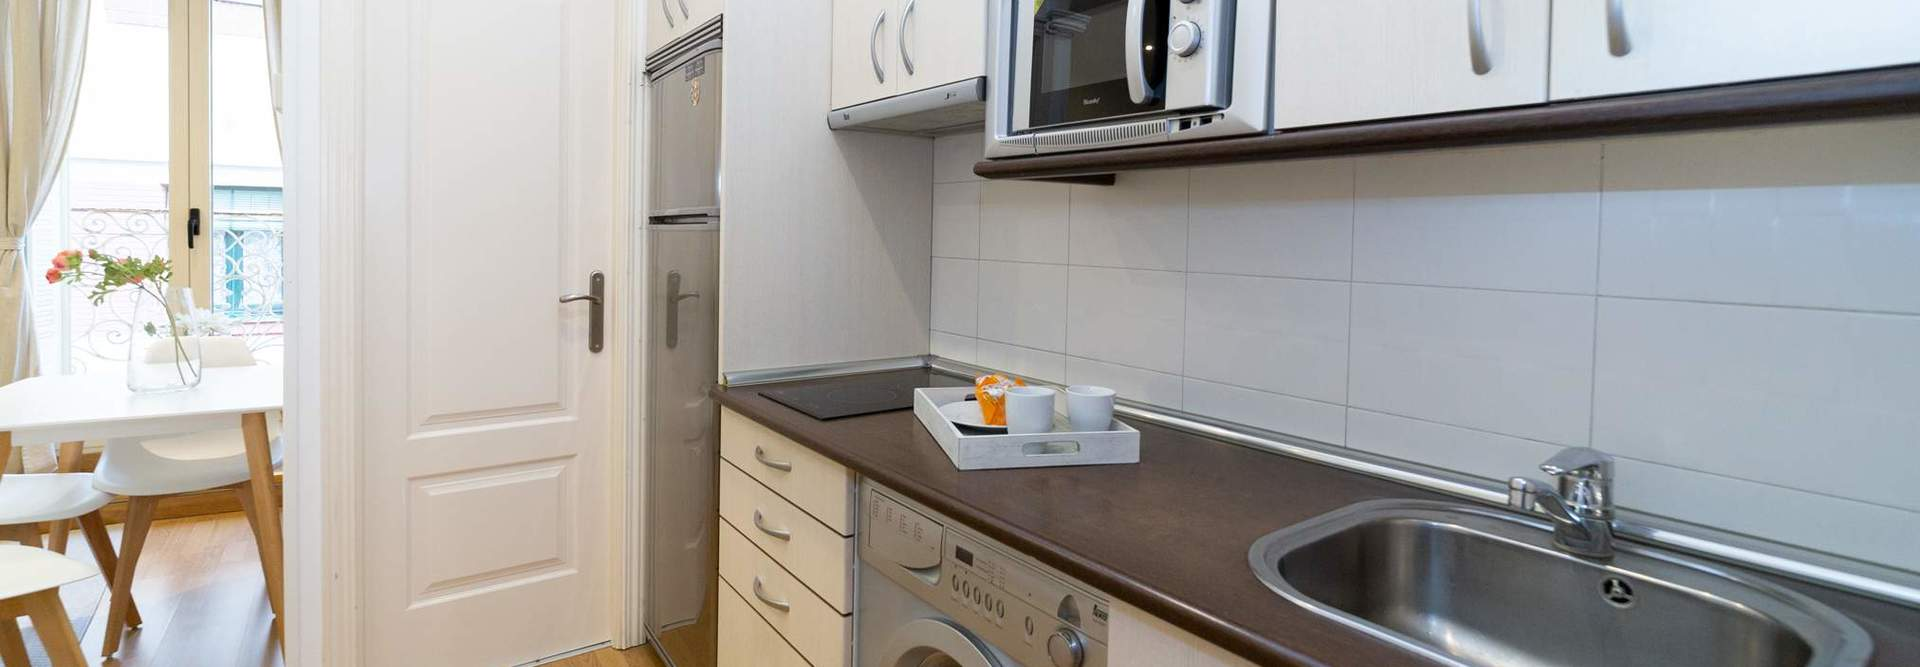 Home alquiler apartamentos madrid mad4rent 17